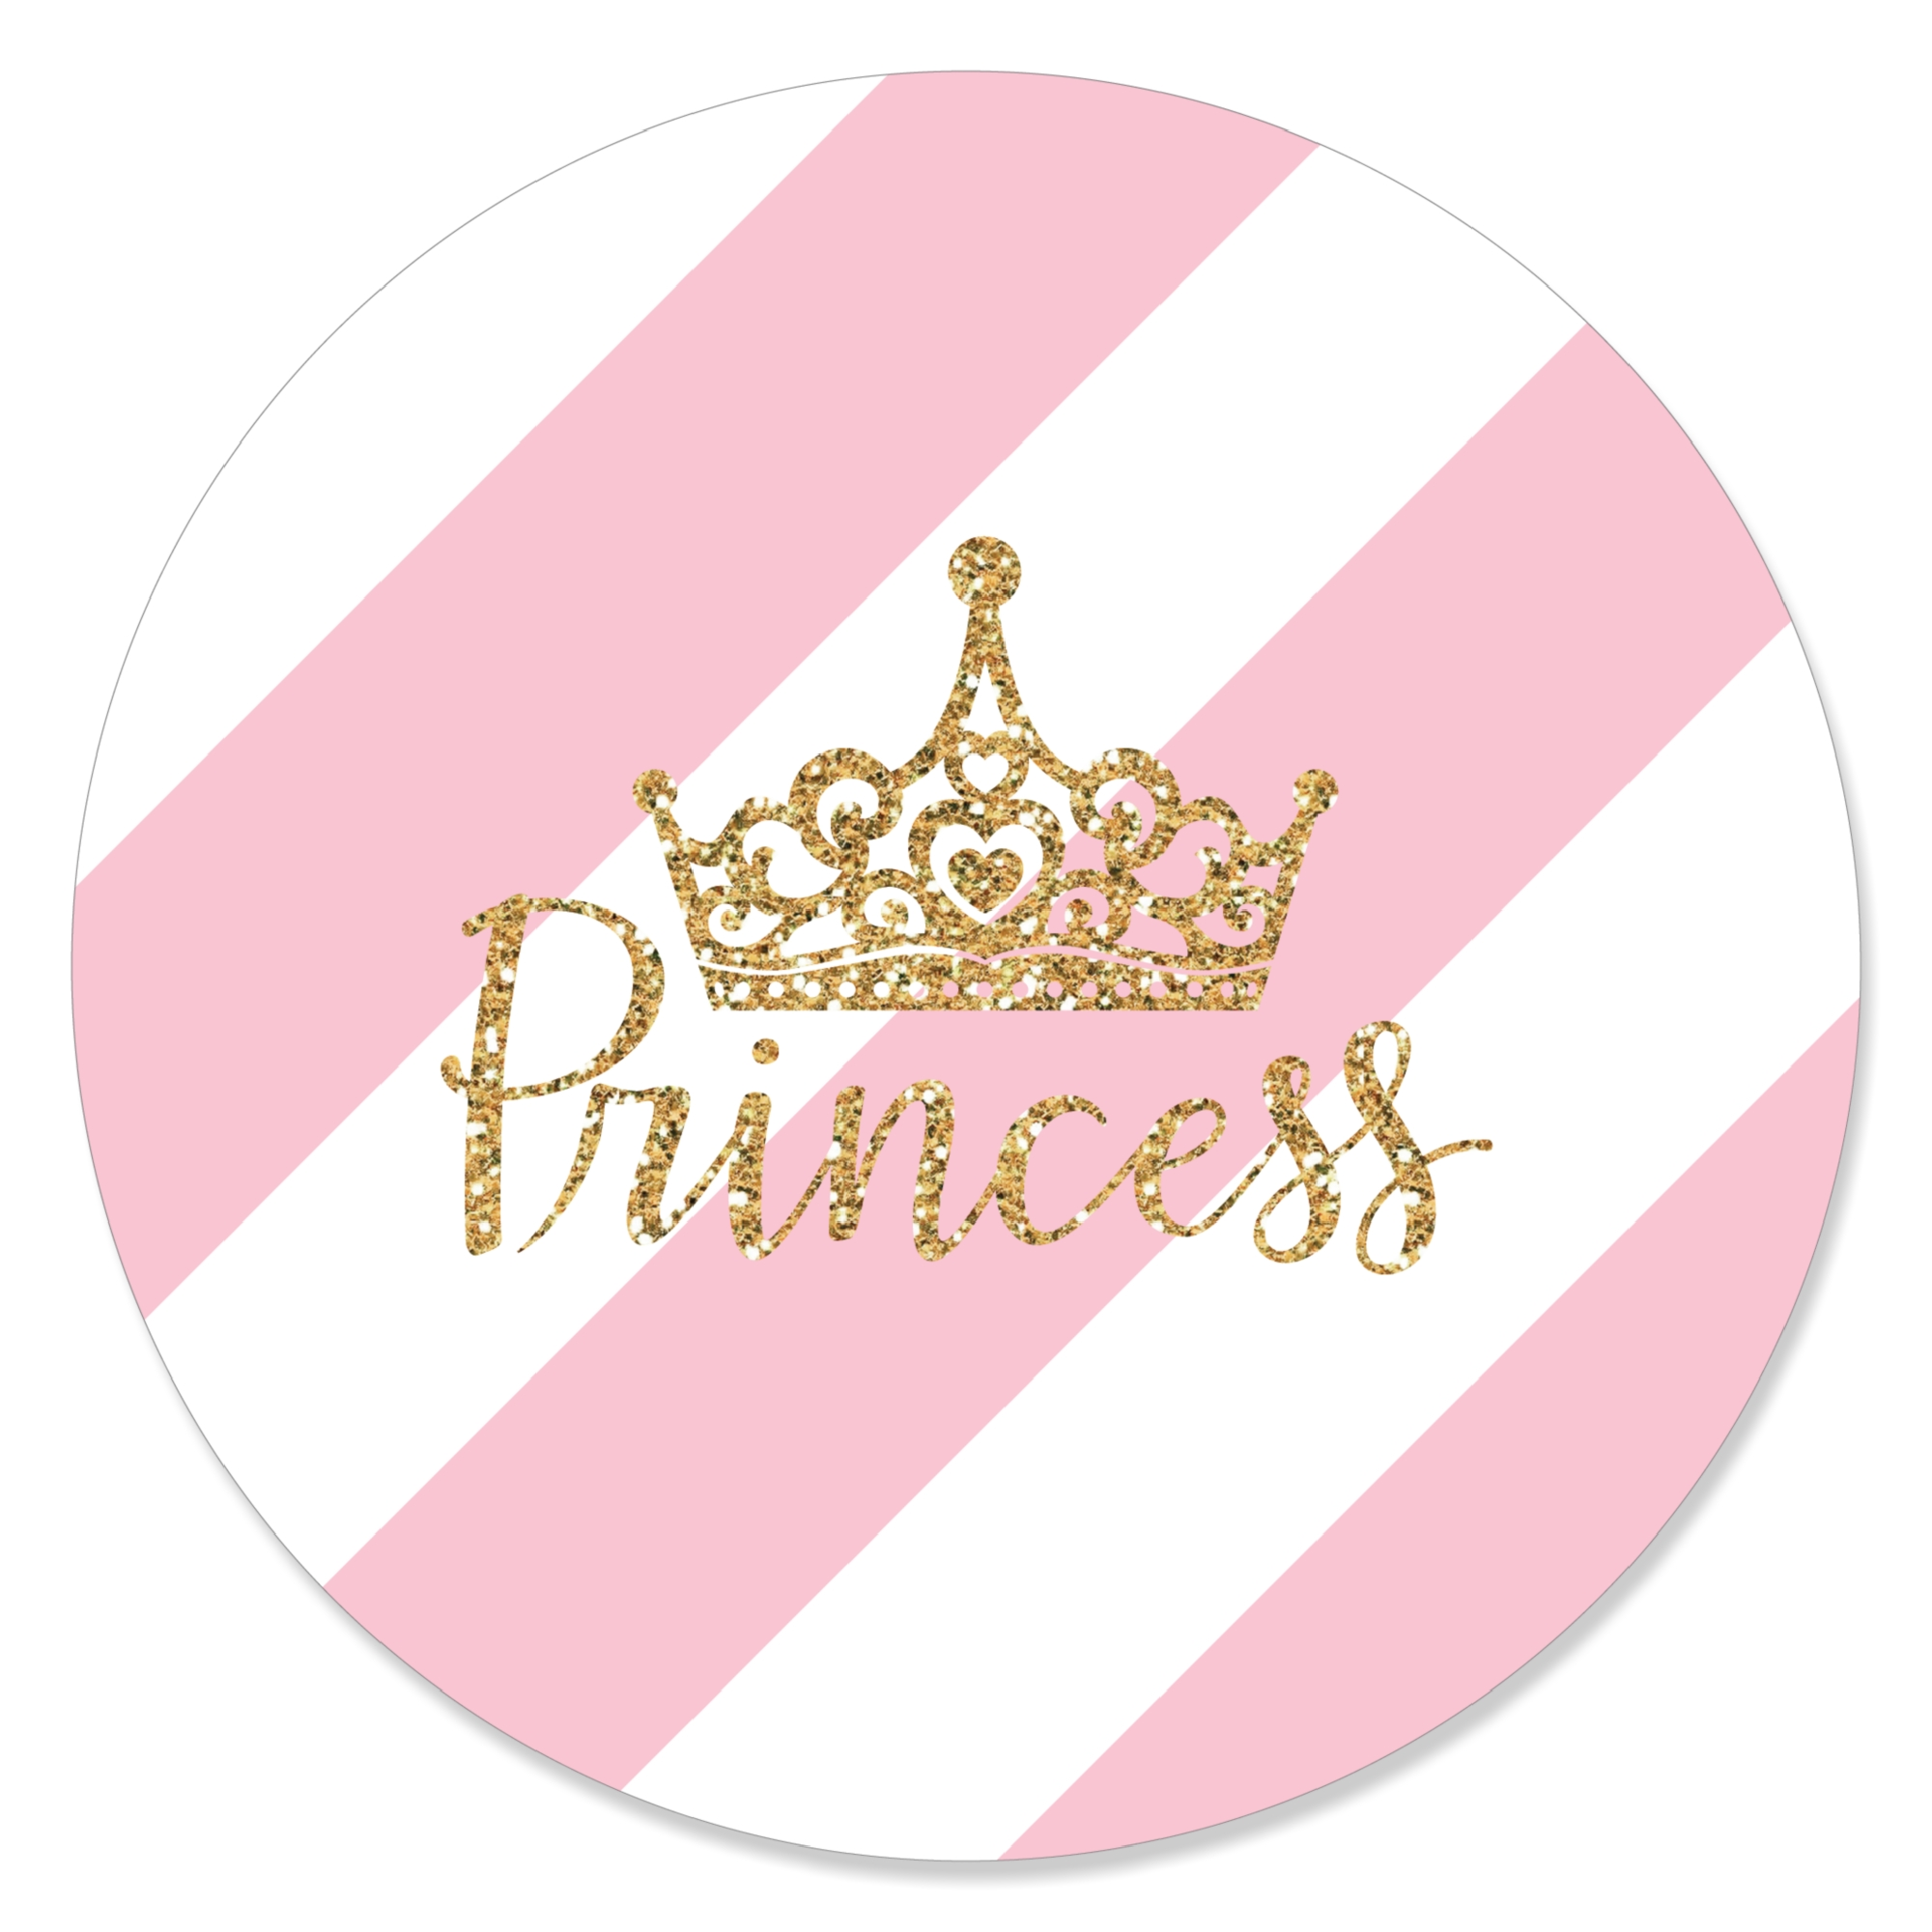 Crowns For Baby Shower: Little Princess Crown -Baby Shower Or Birthday Party